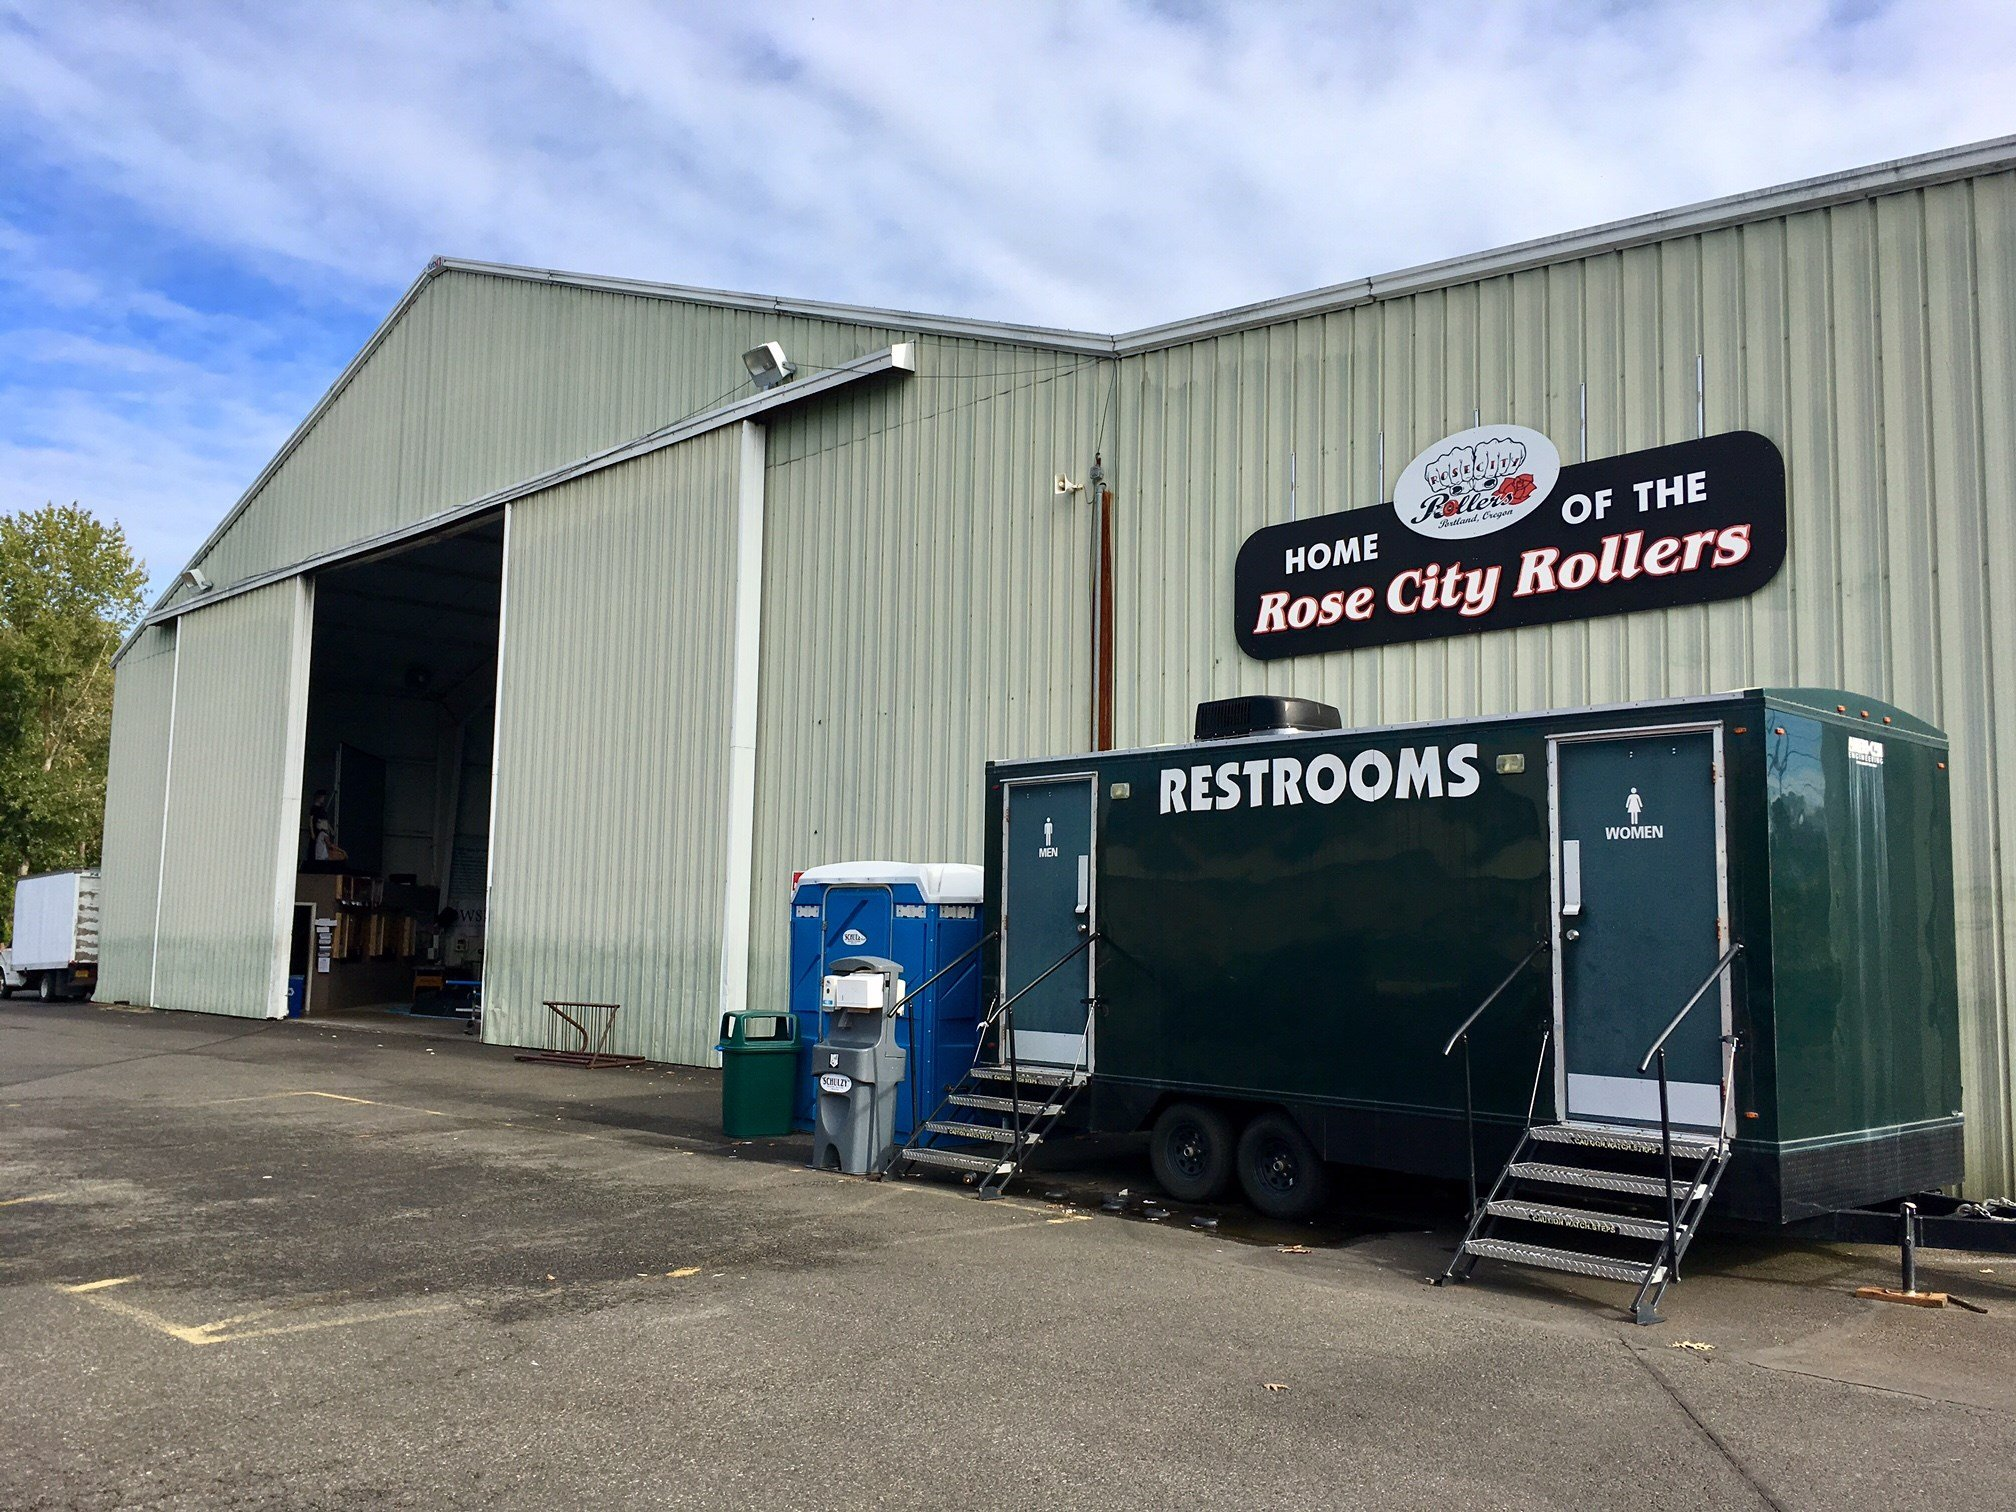 The Oaks Park hangar where the Rose City Rollers currently play.